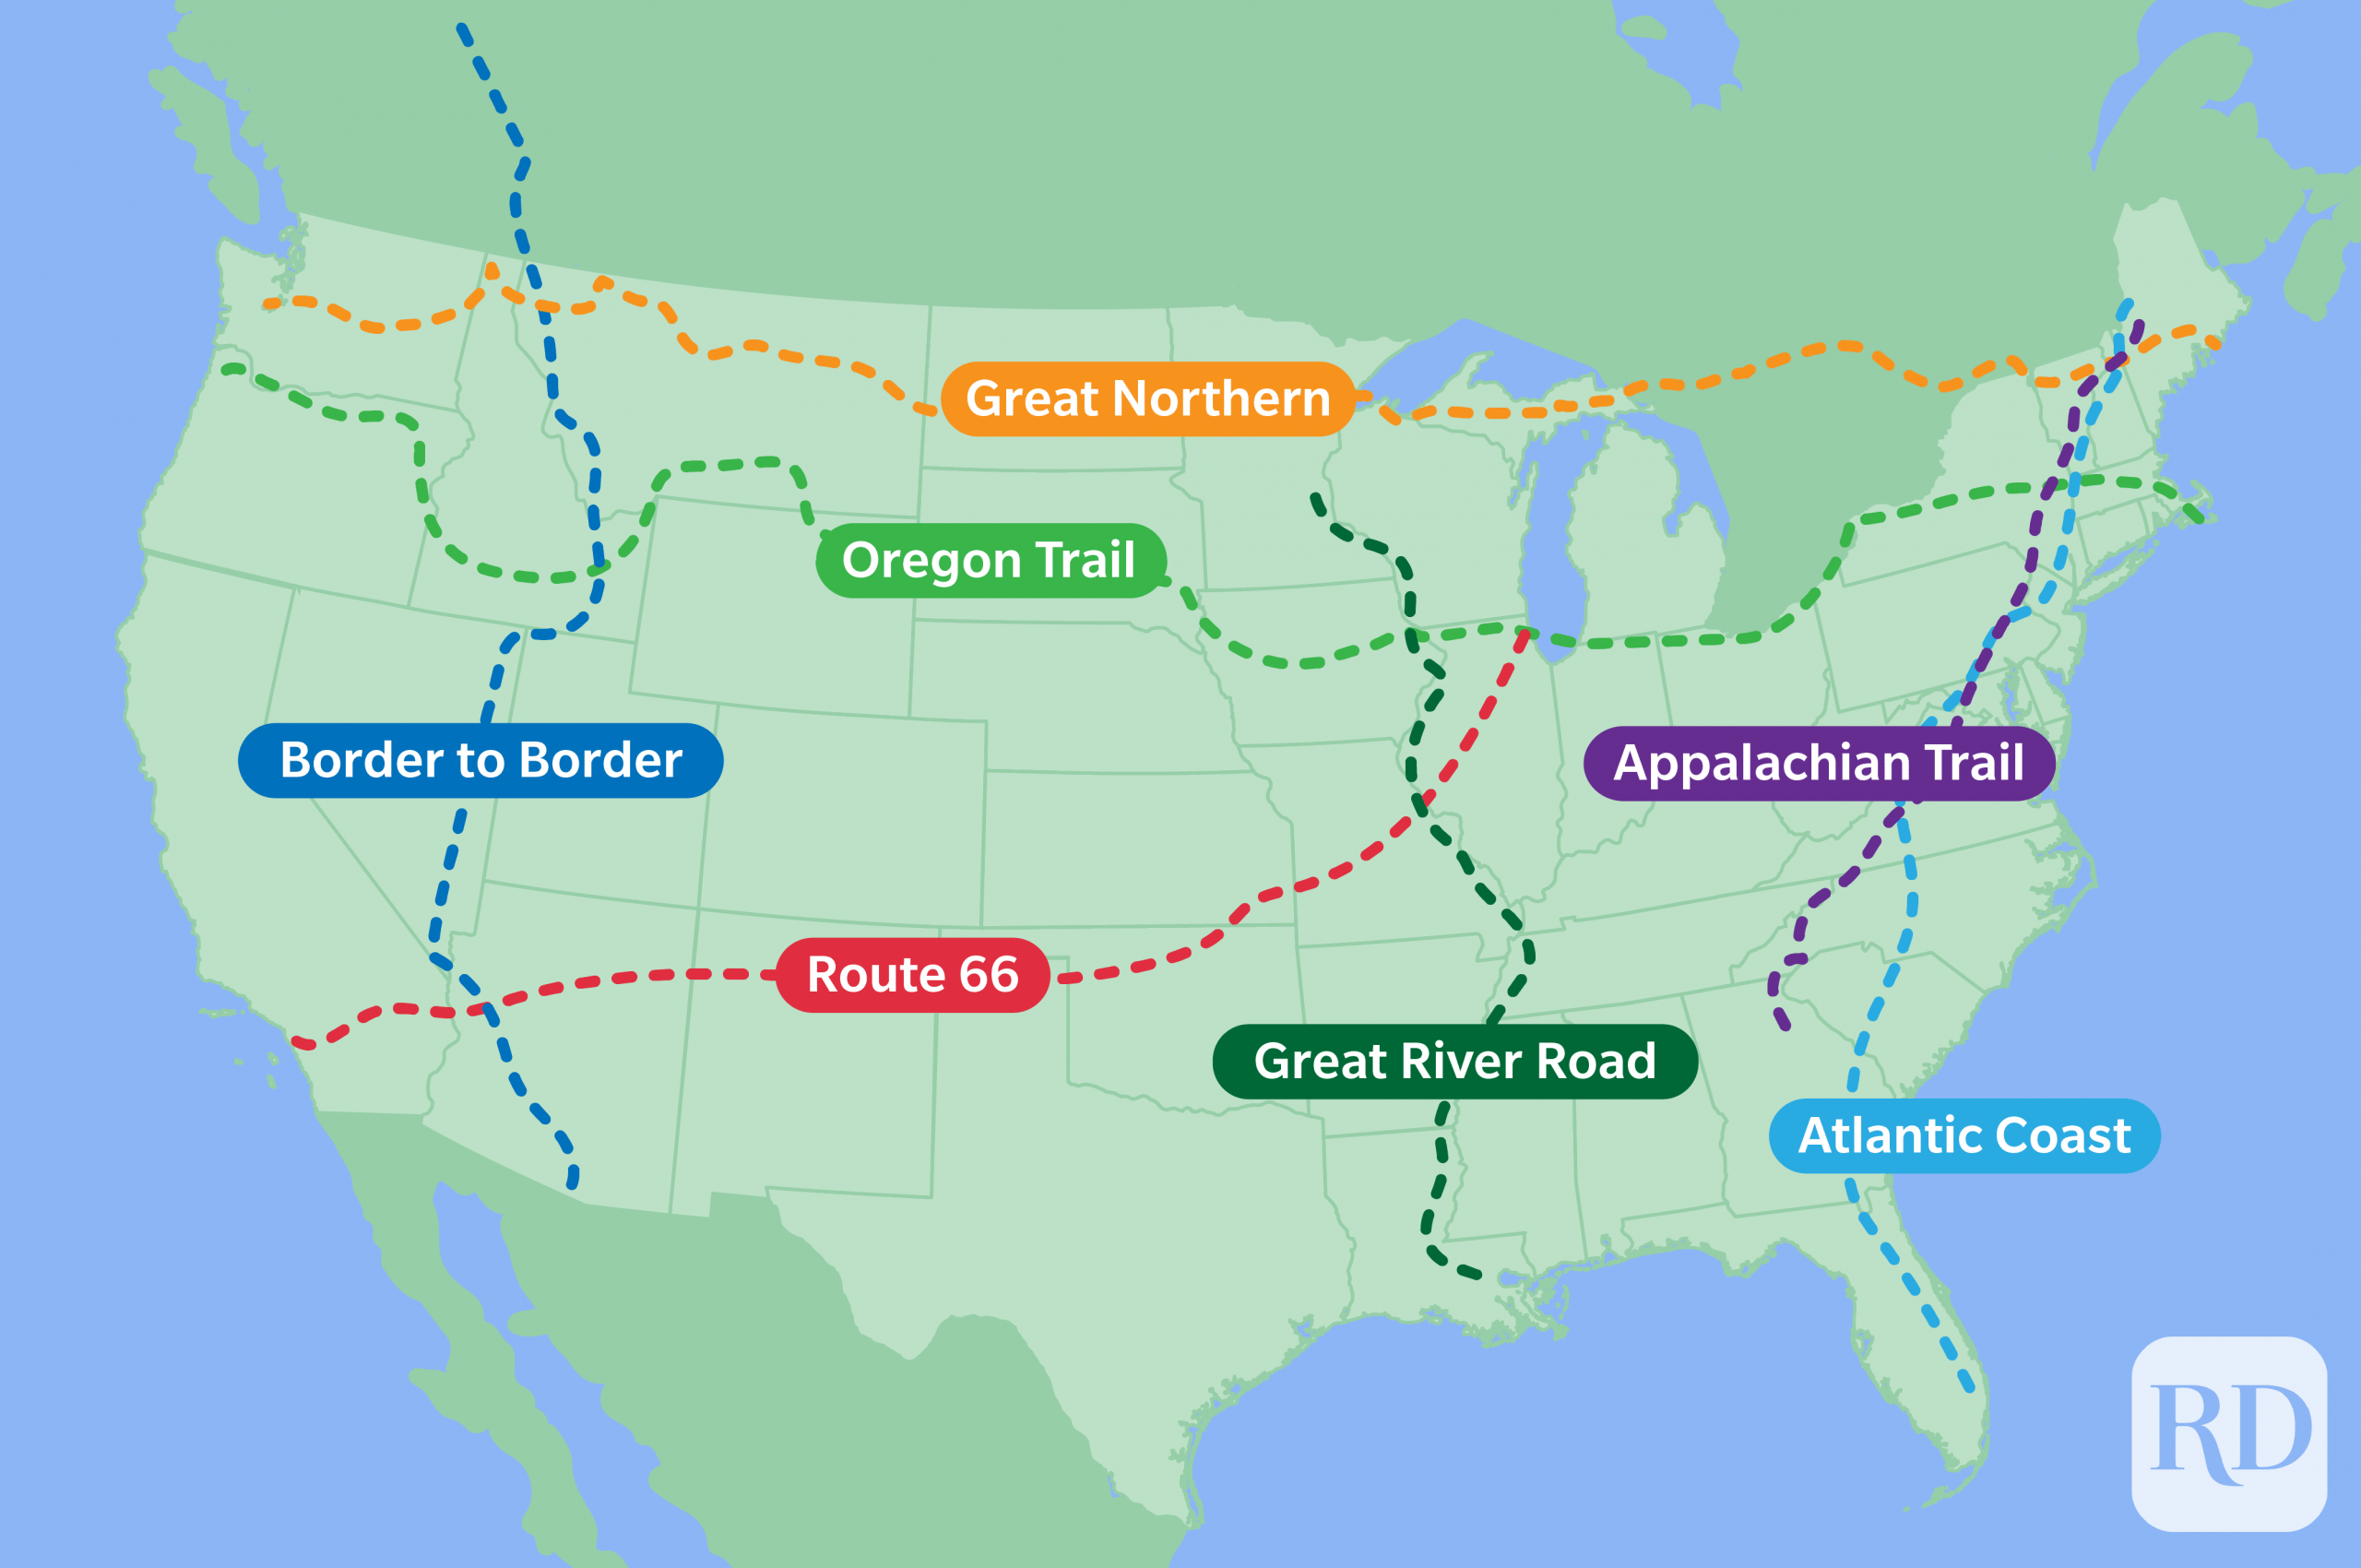 Map of united states with various road trip routes outlined in colorful dotted lines